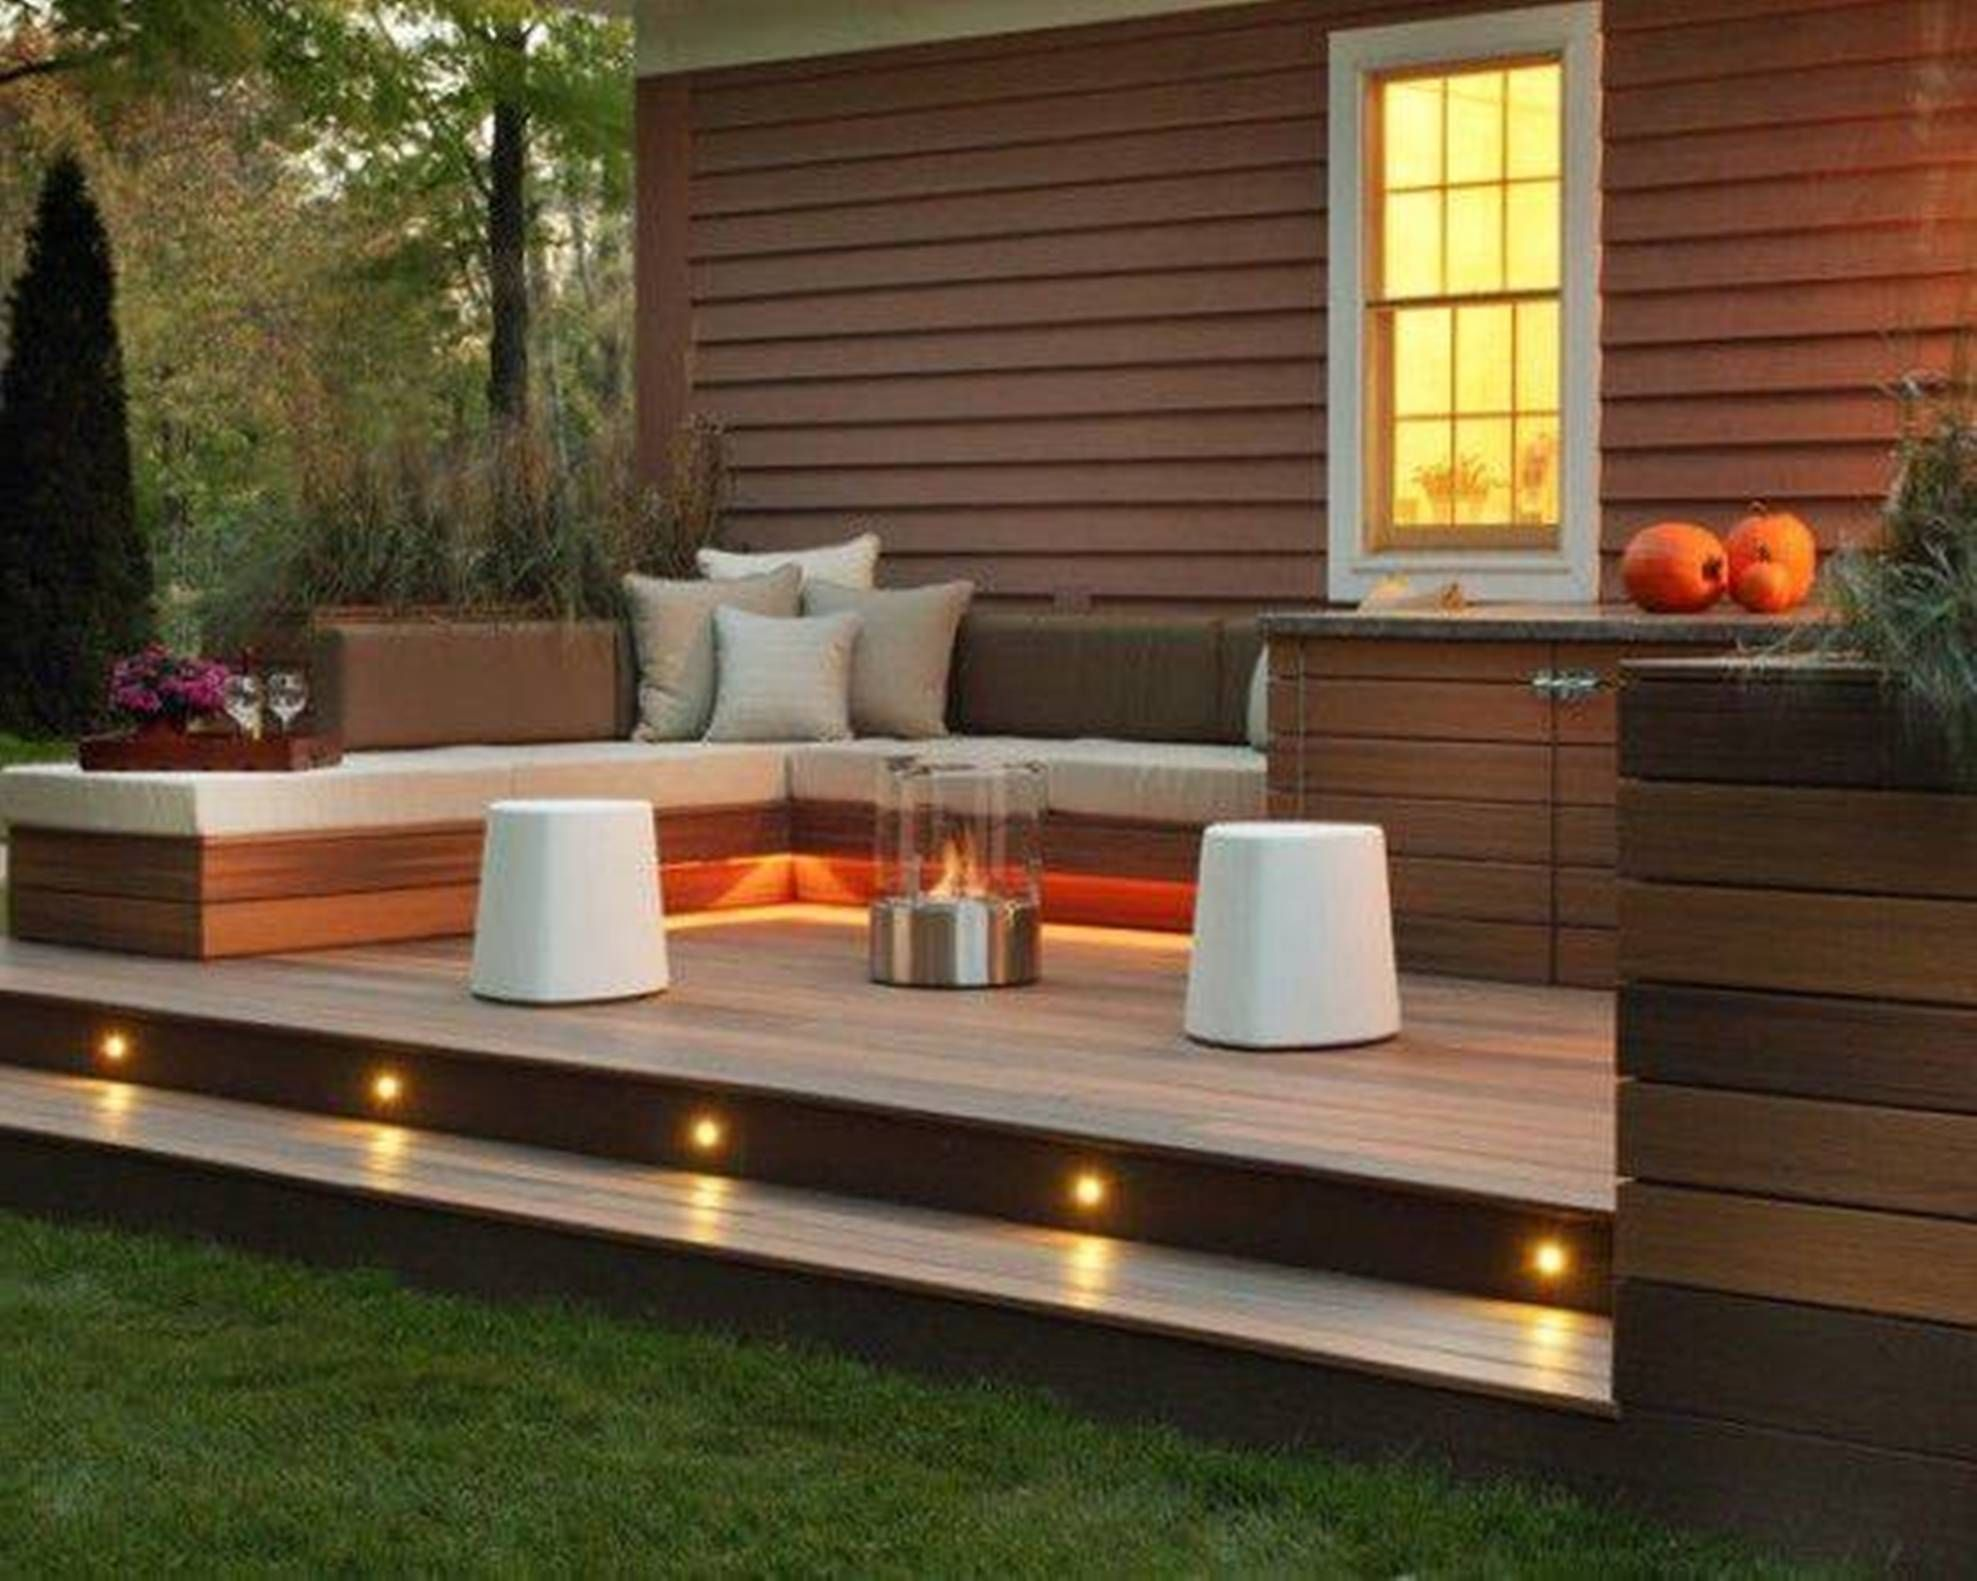 Ideas For Deck Design exteriors awesome outdoor wood deck designs ideas patio flooring ideas for deck design Landscaping And Outdoor Building Great Small Backyard Deck Designs Small Backyard Deck Designs With